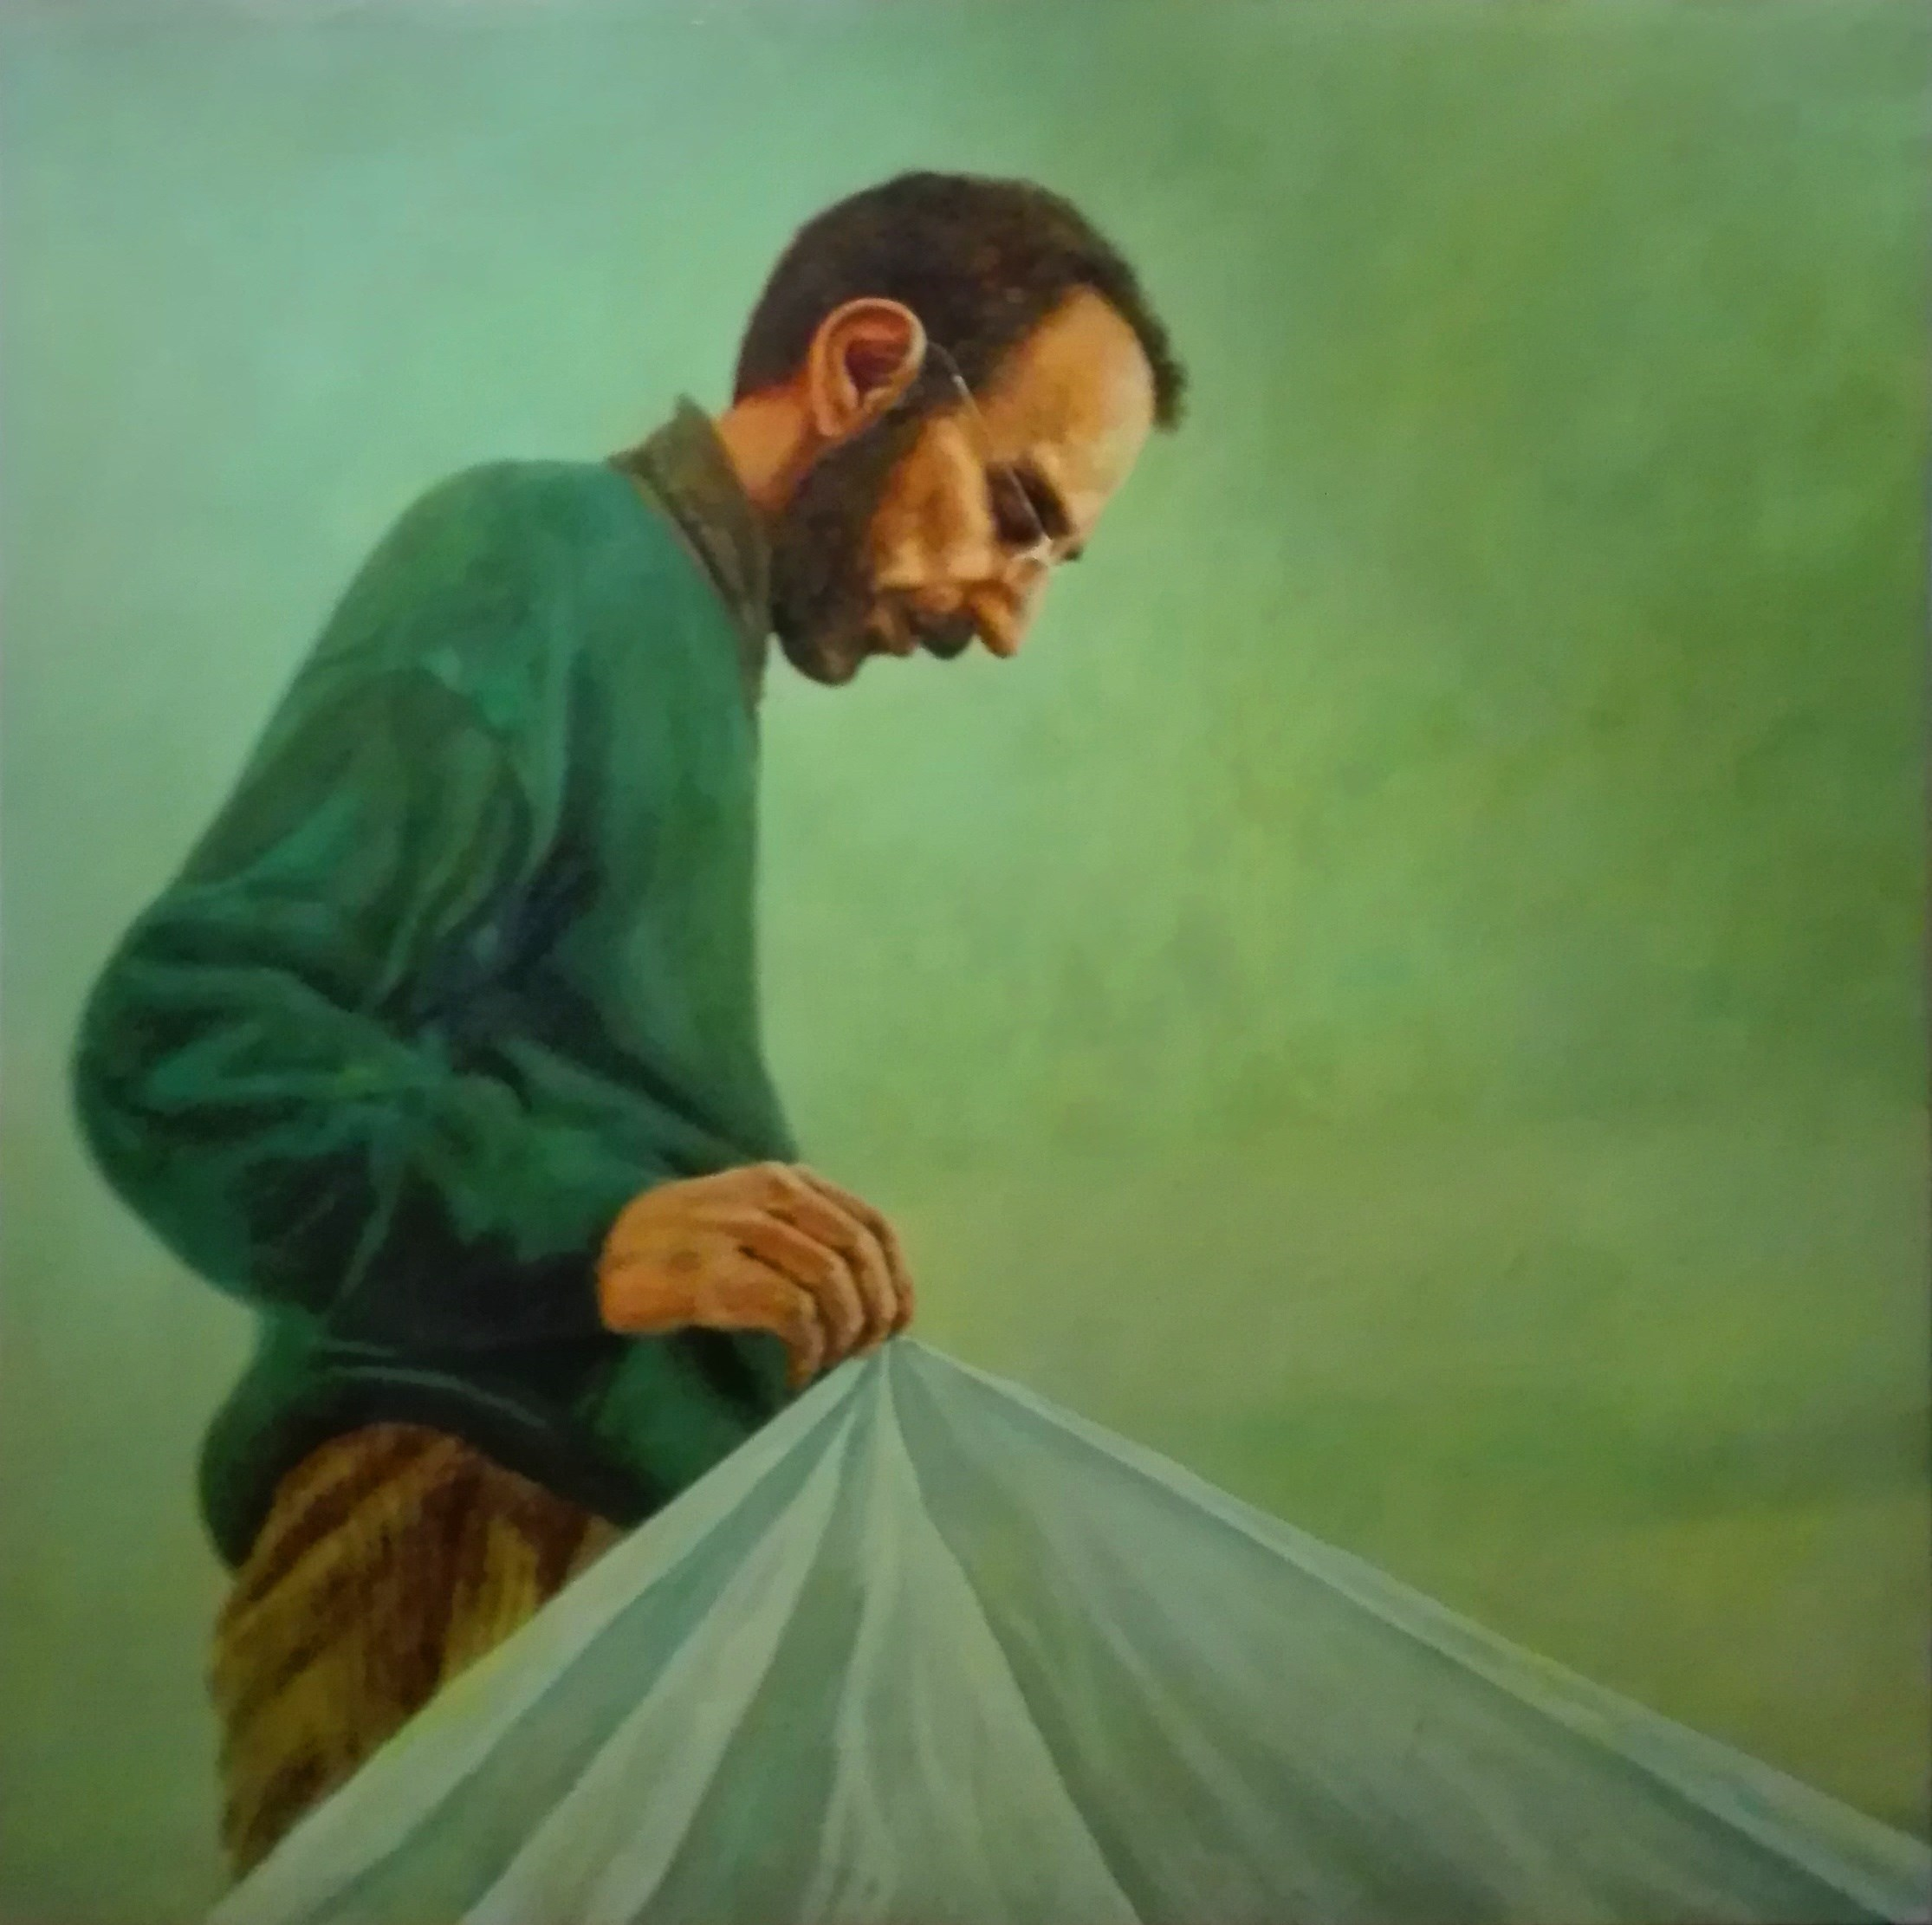 ao terceiro dia , original Human Figure Canvas Painting by Pedro dos Santos Silva